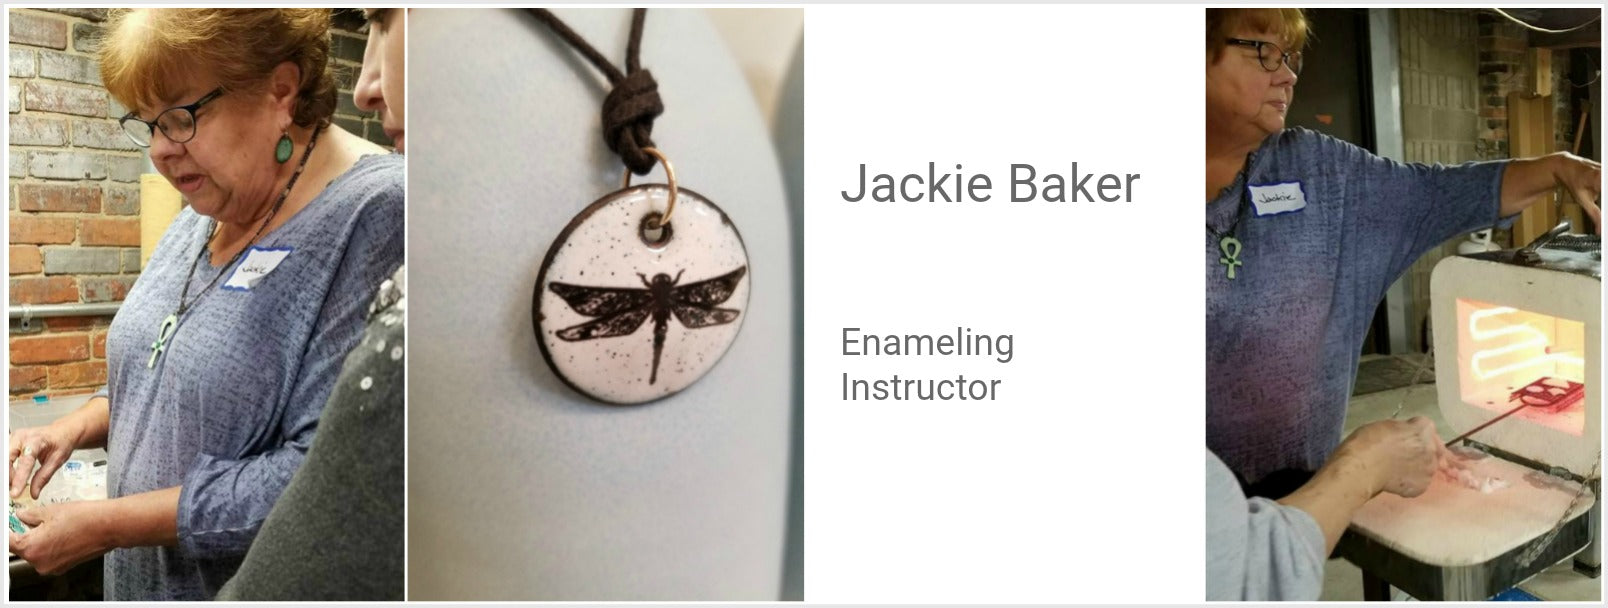 Jackie Baker, Enameling Instructor